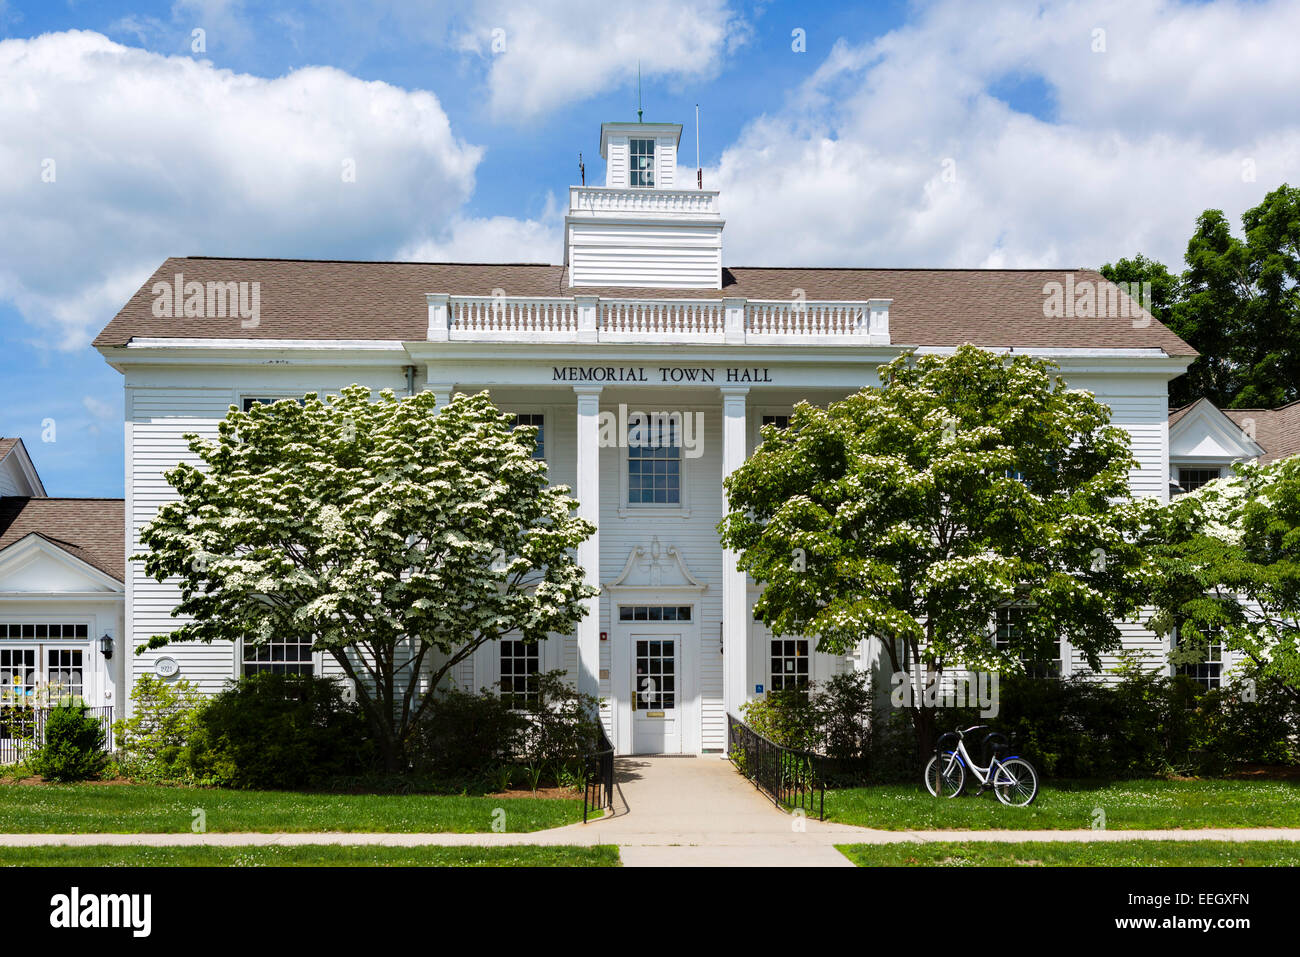 Memorial Town Hall in Old Lyme, Connecticut, USA - Stock Image